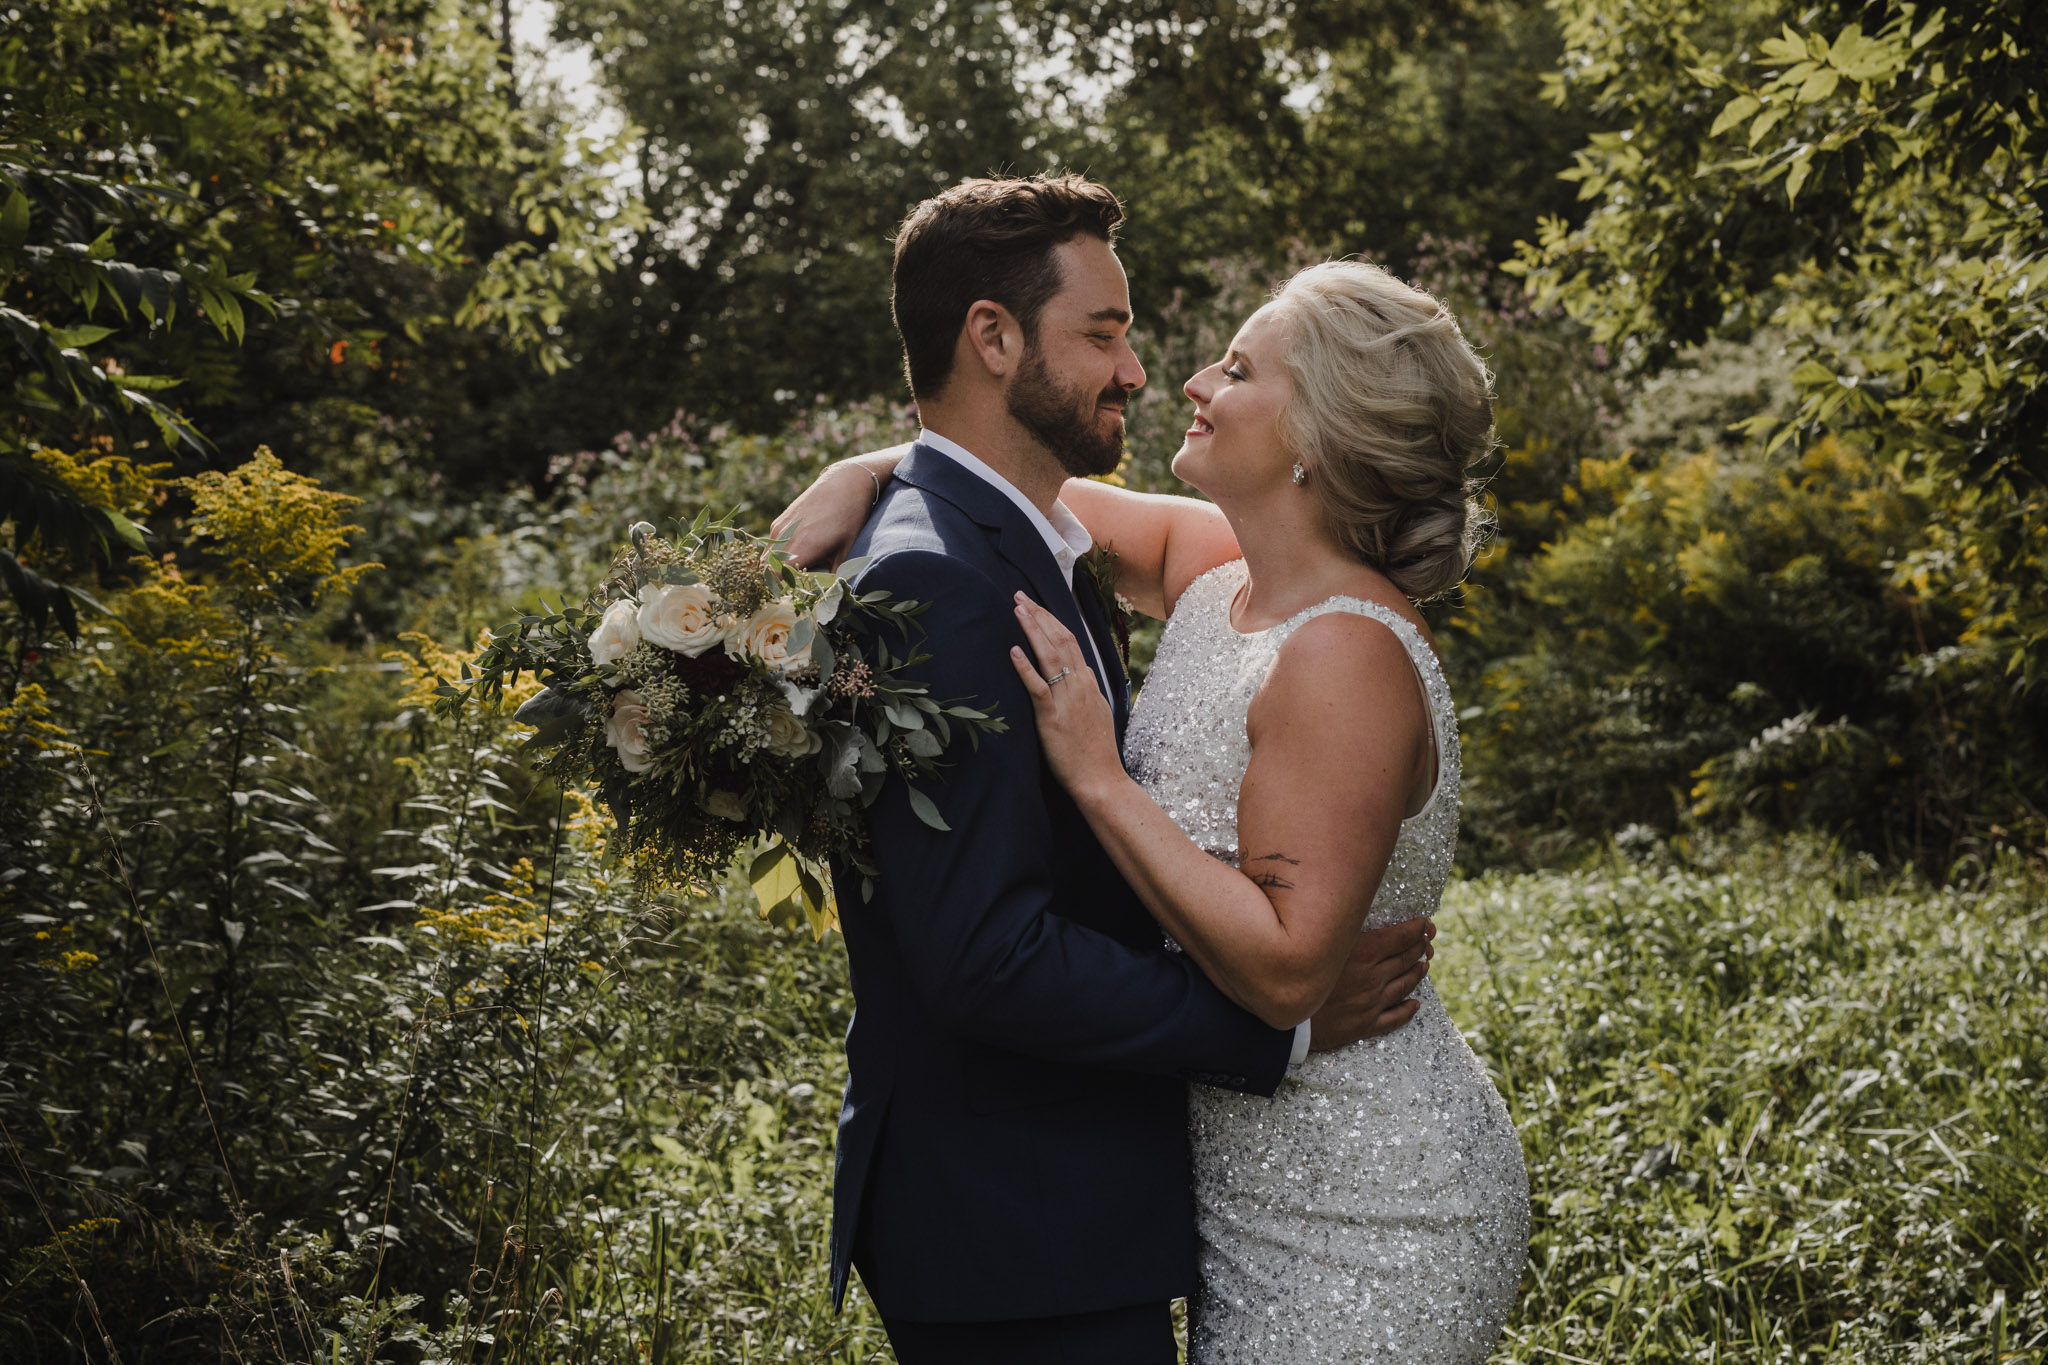 Century Barn Wedding Photographer - smiles in your arms